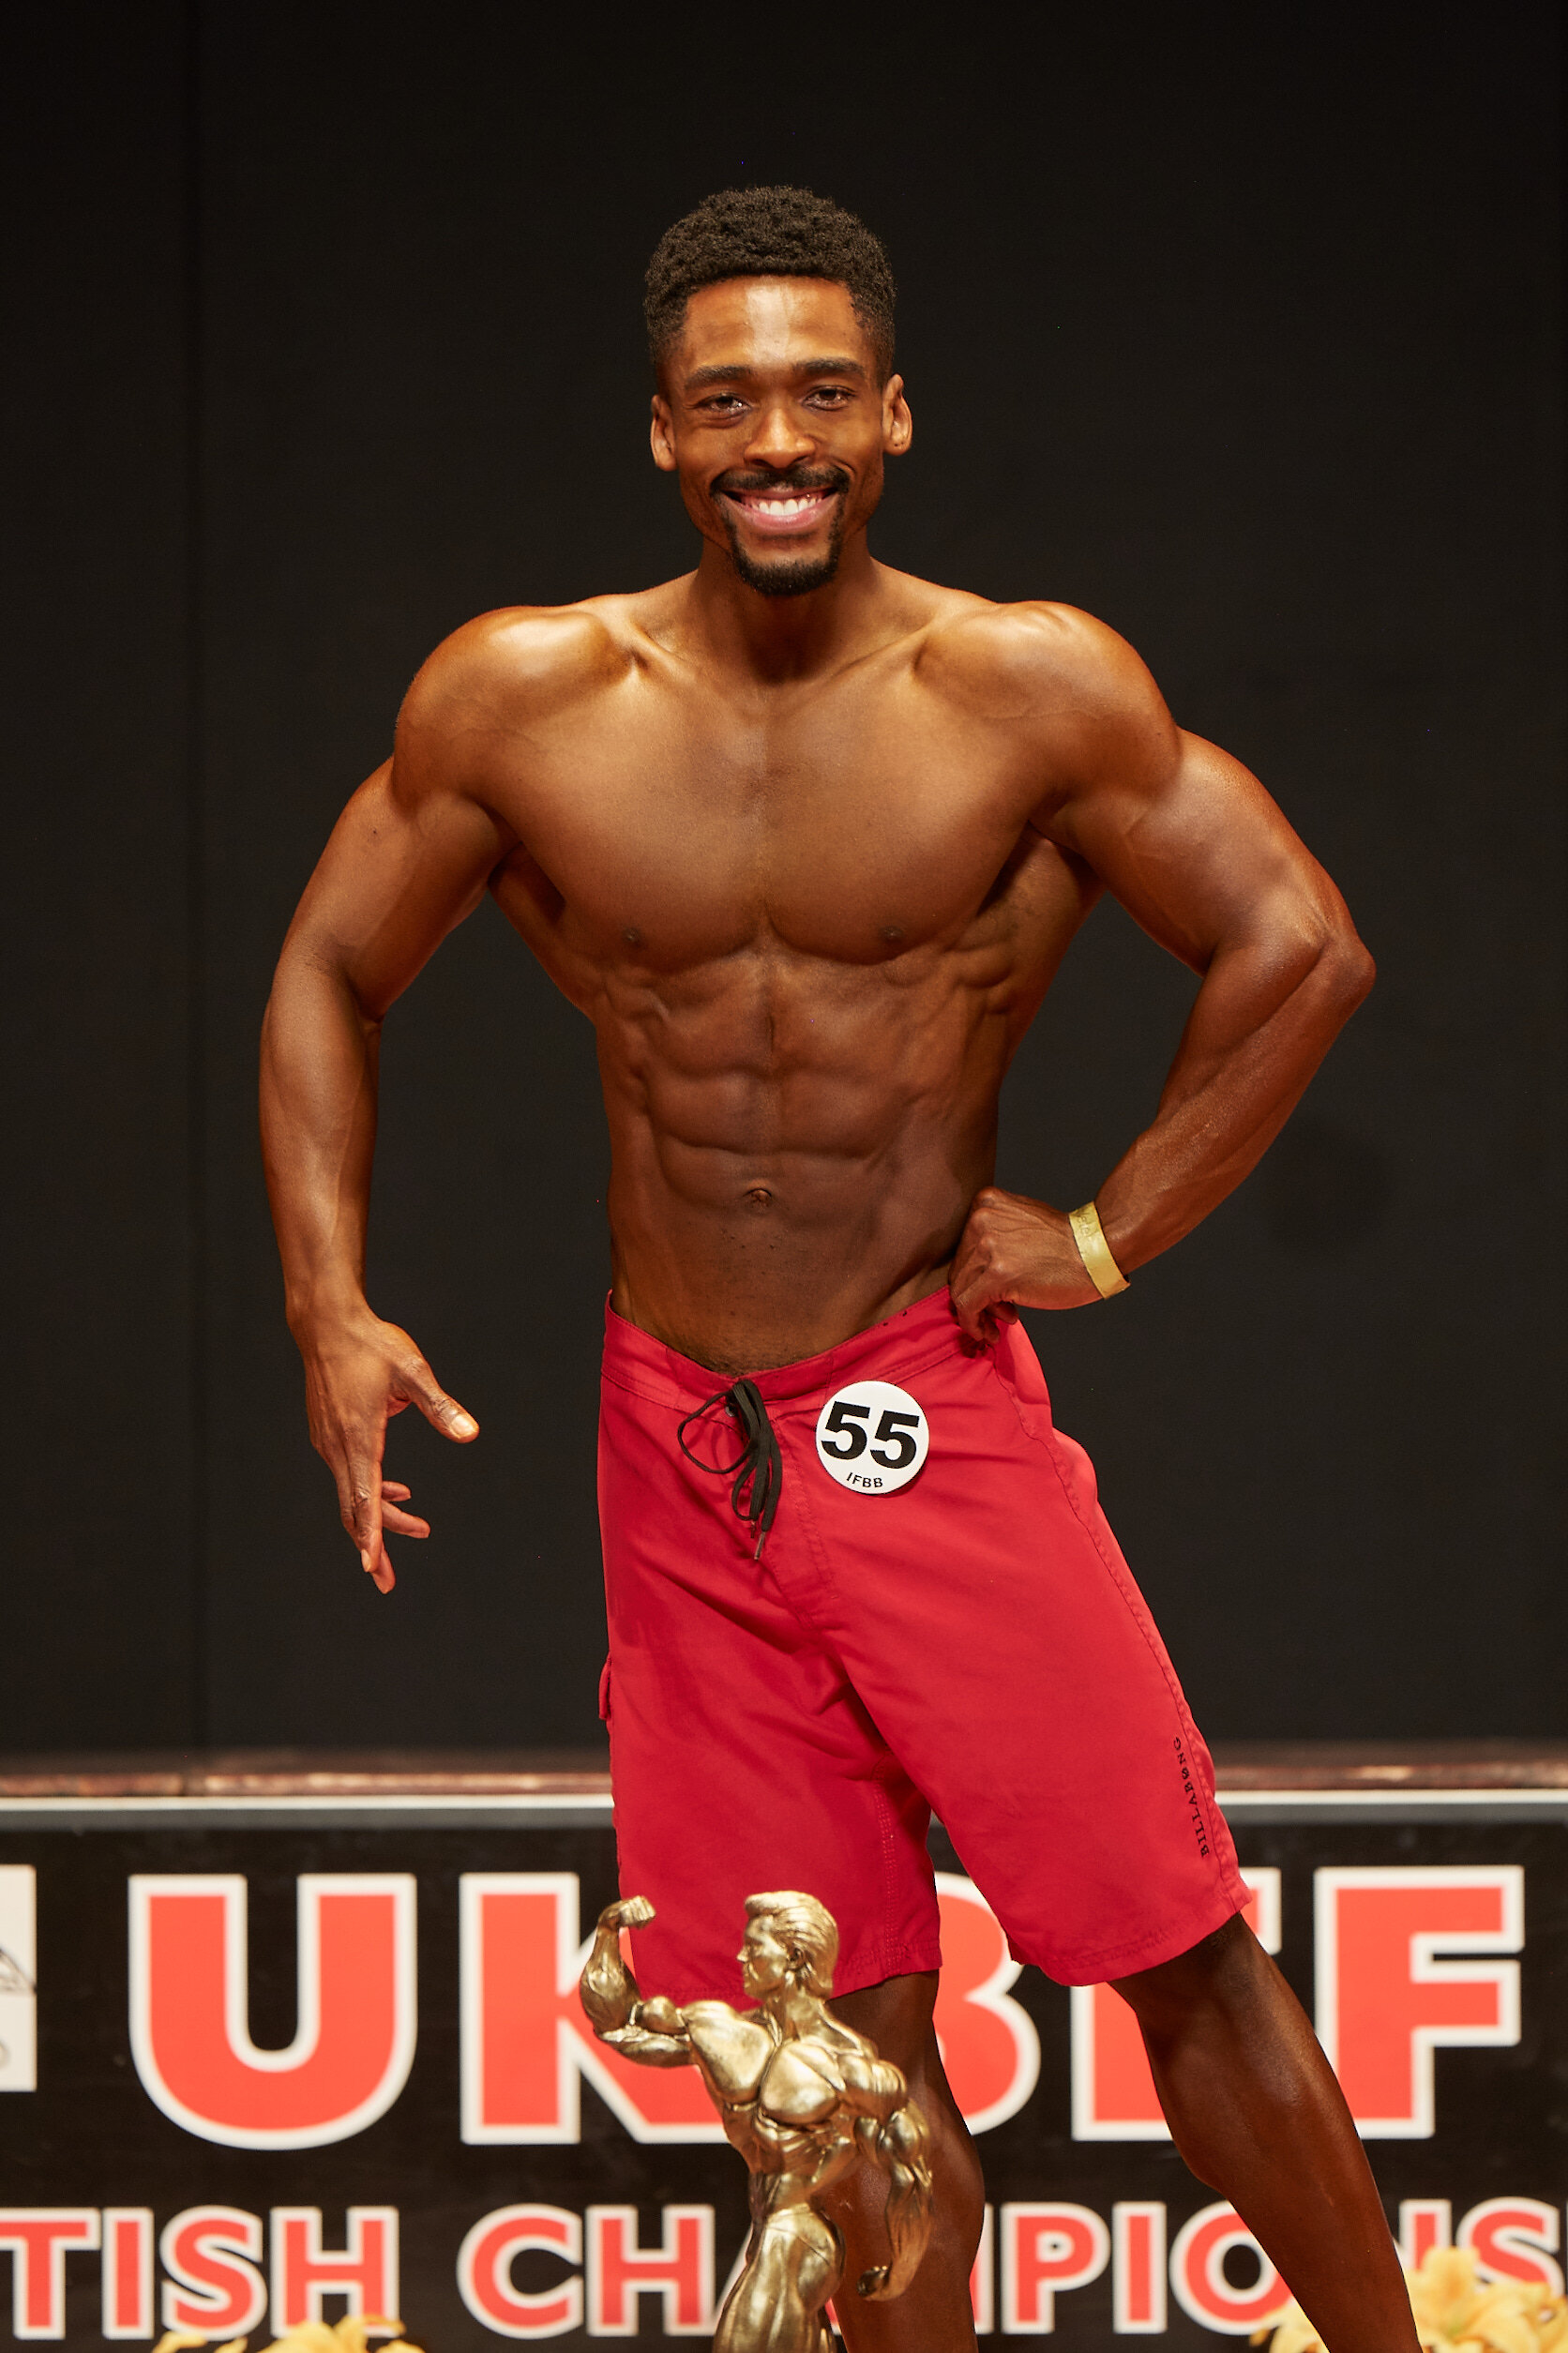 Aaron Daley, the overall men's physique champion.